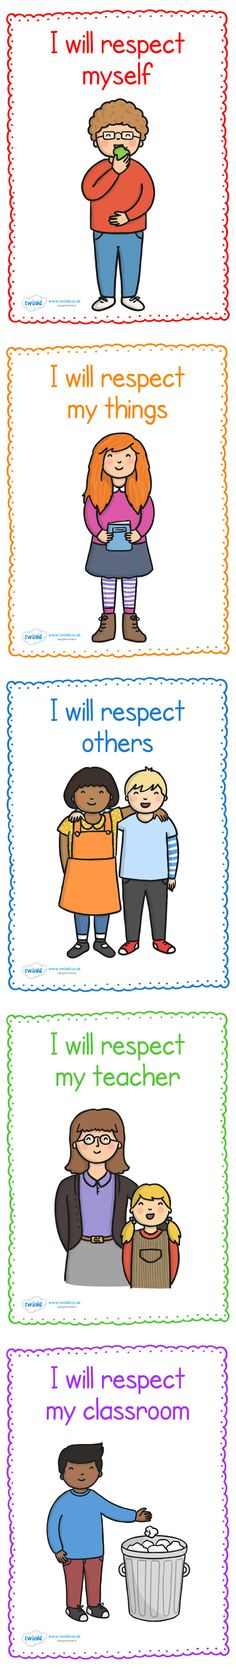 Twinkl Resources >> Respect in The Classroom Display Posters  >> Classroom printables for Pre-School, Kindergarten, Elementary School and beyond! Banners, Display, Posters, Class Management